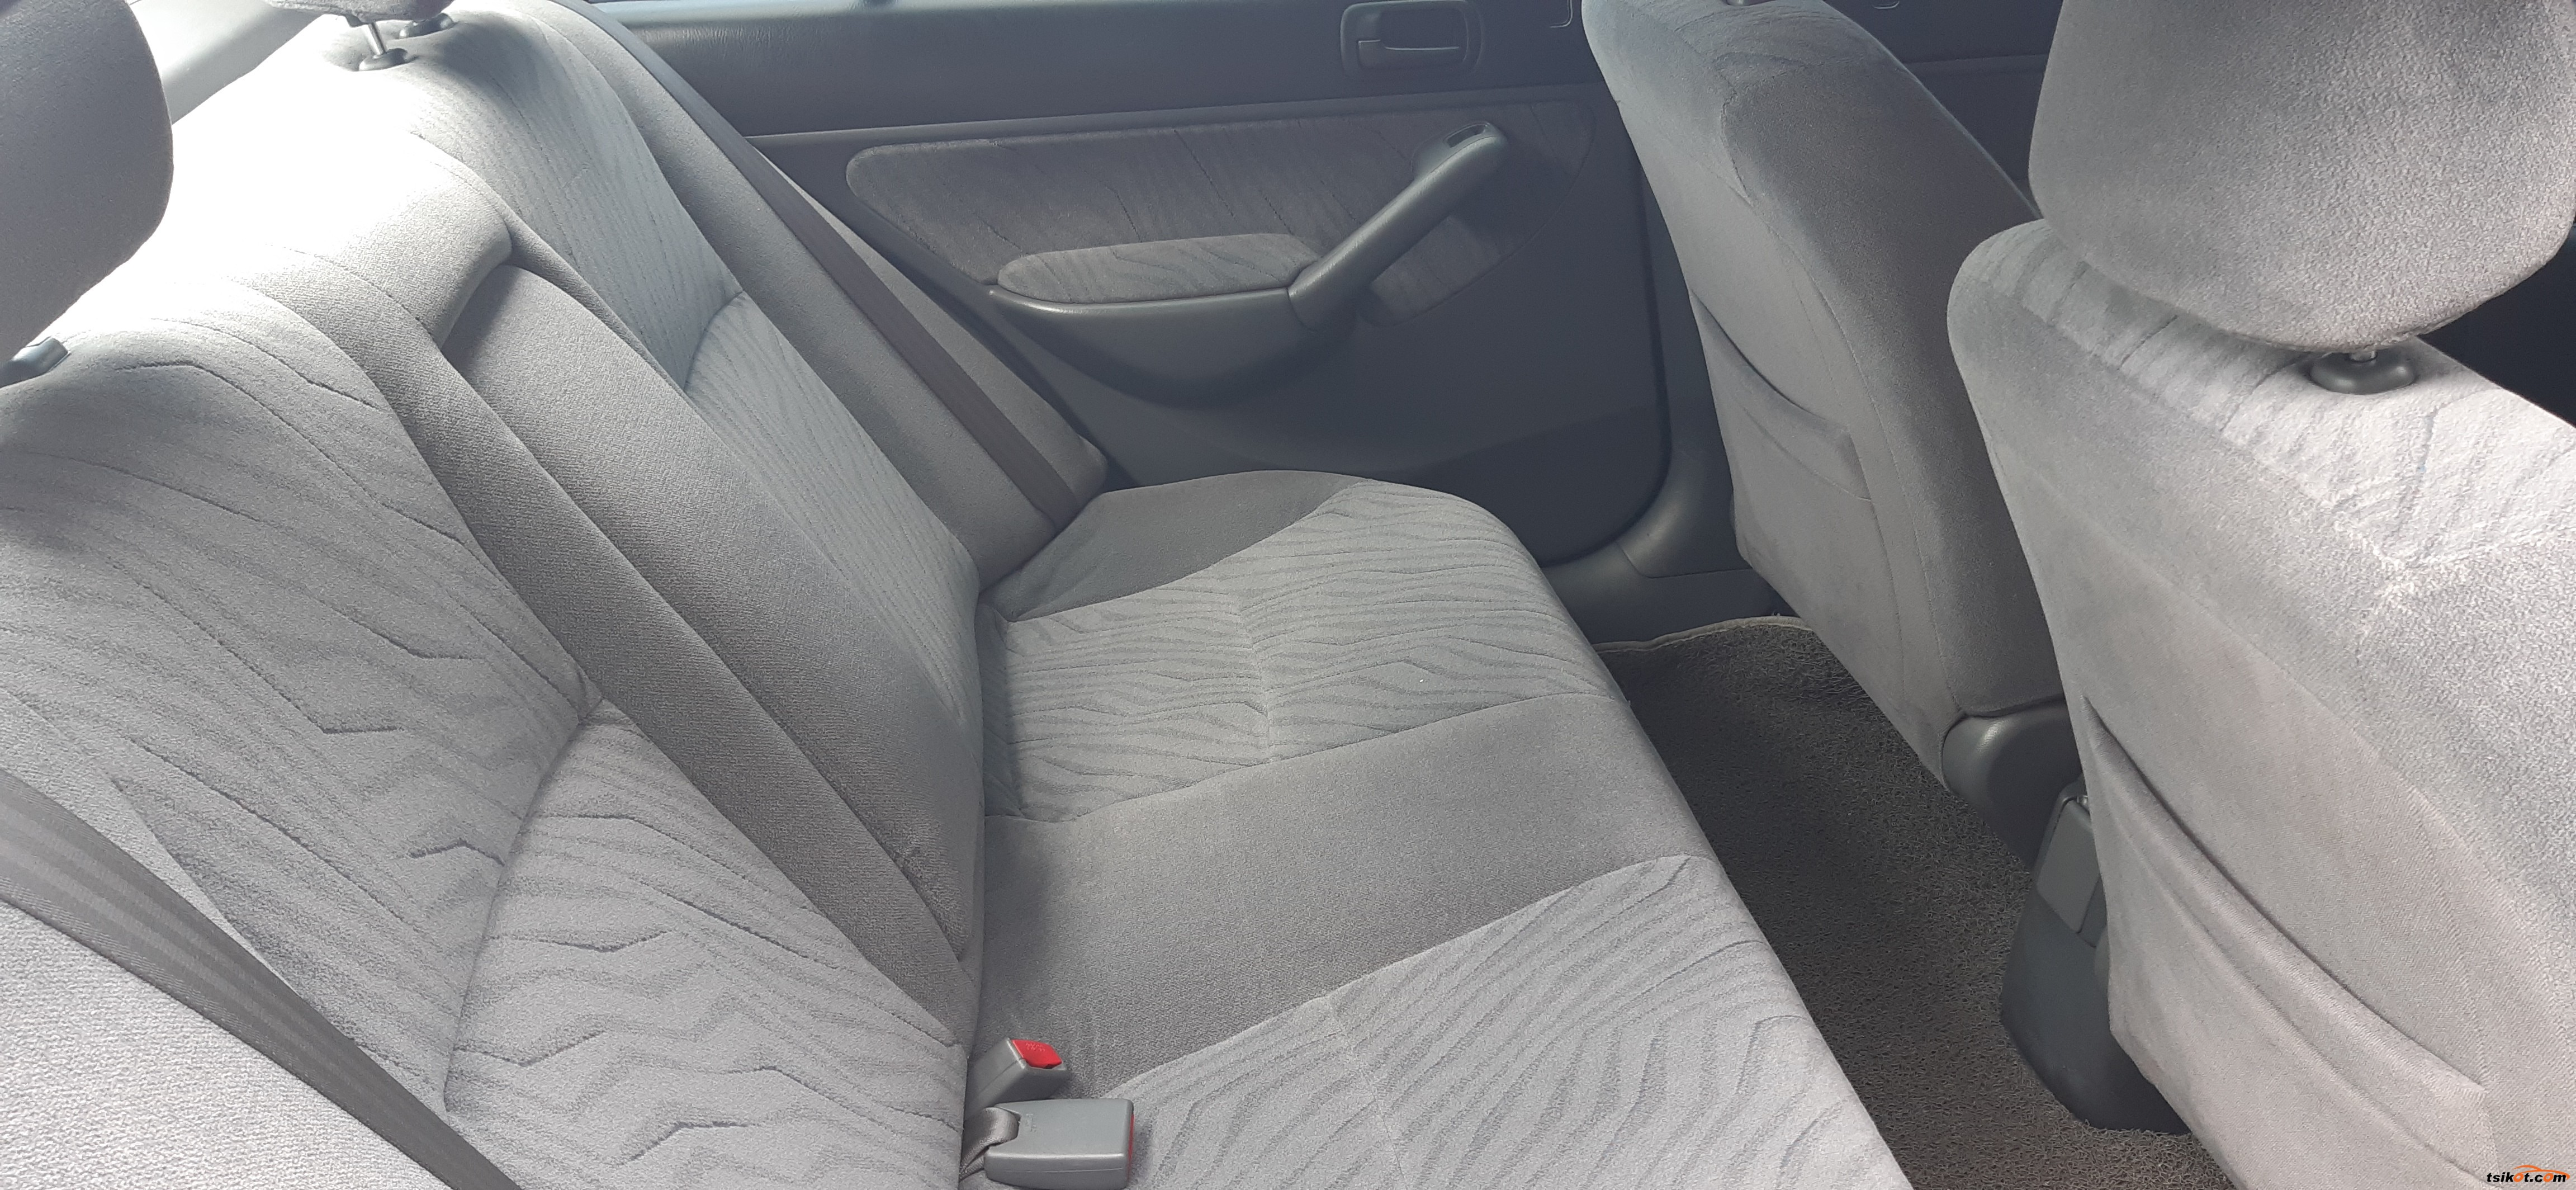 Honda Civic 2005 - 4